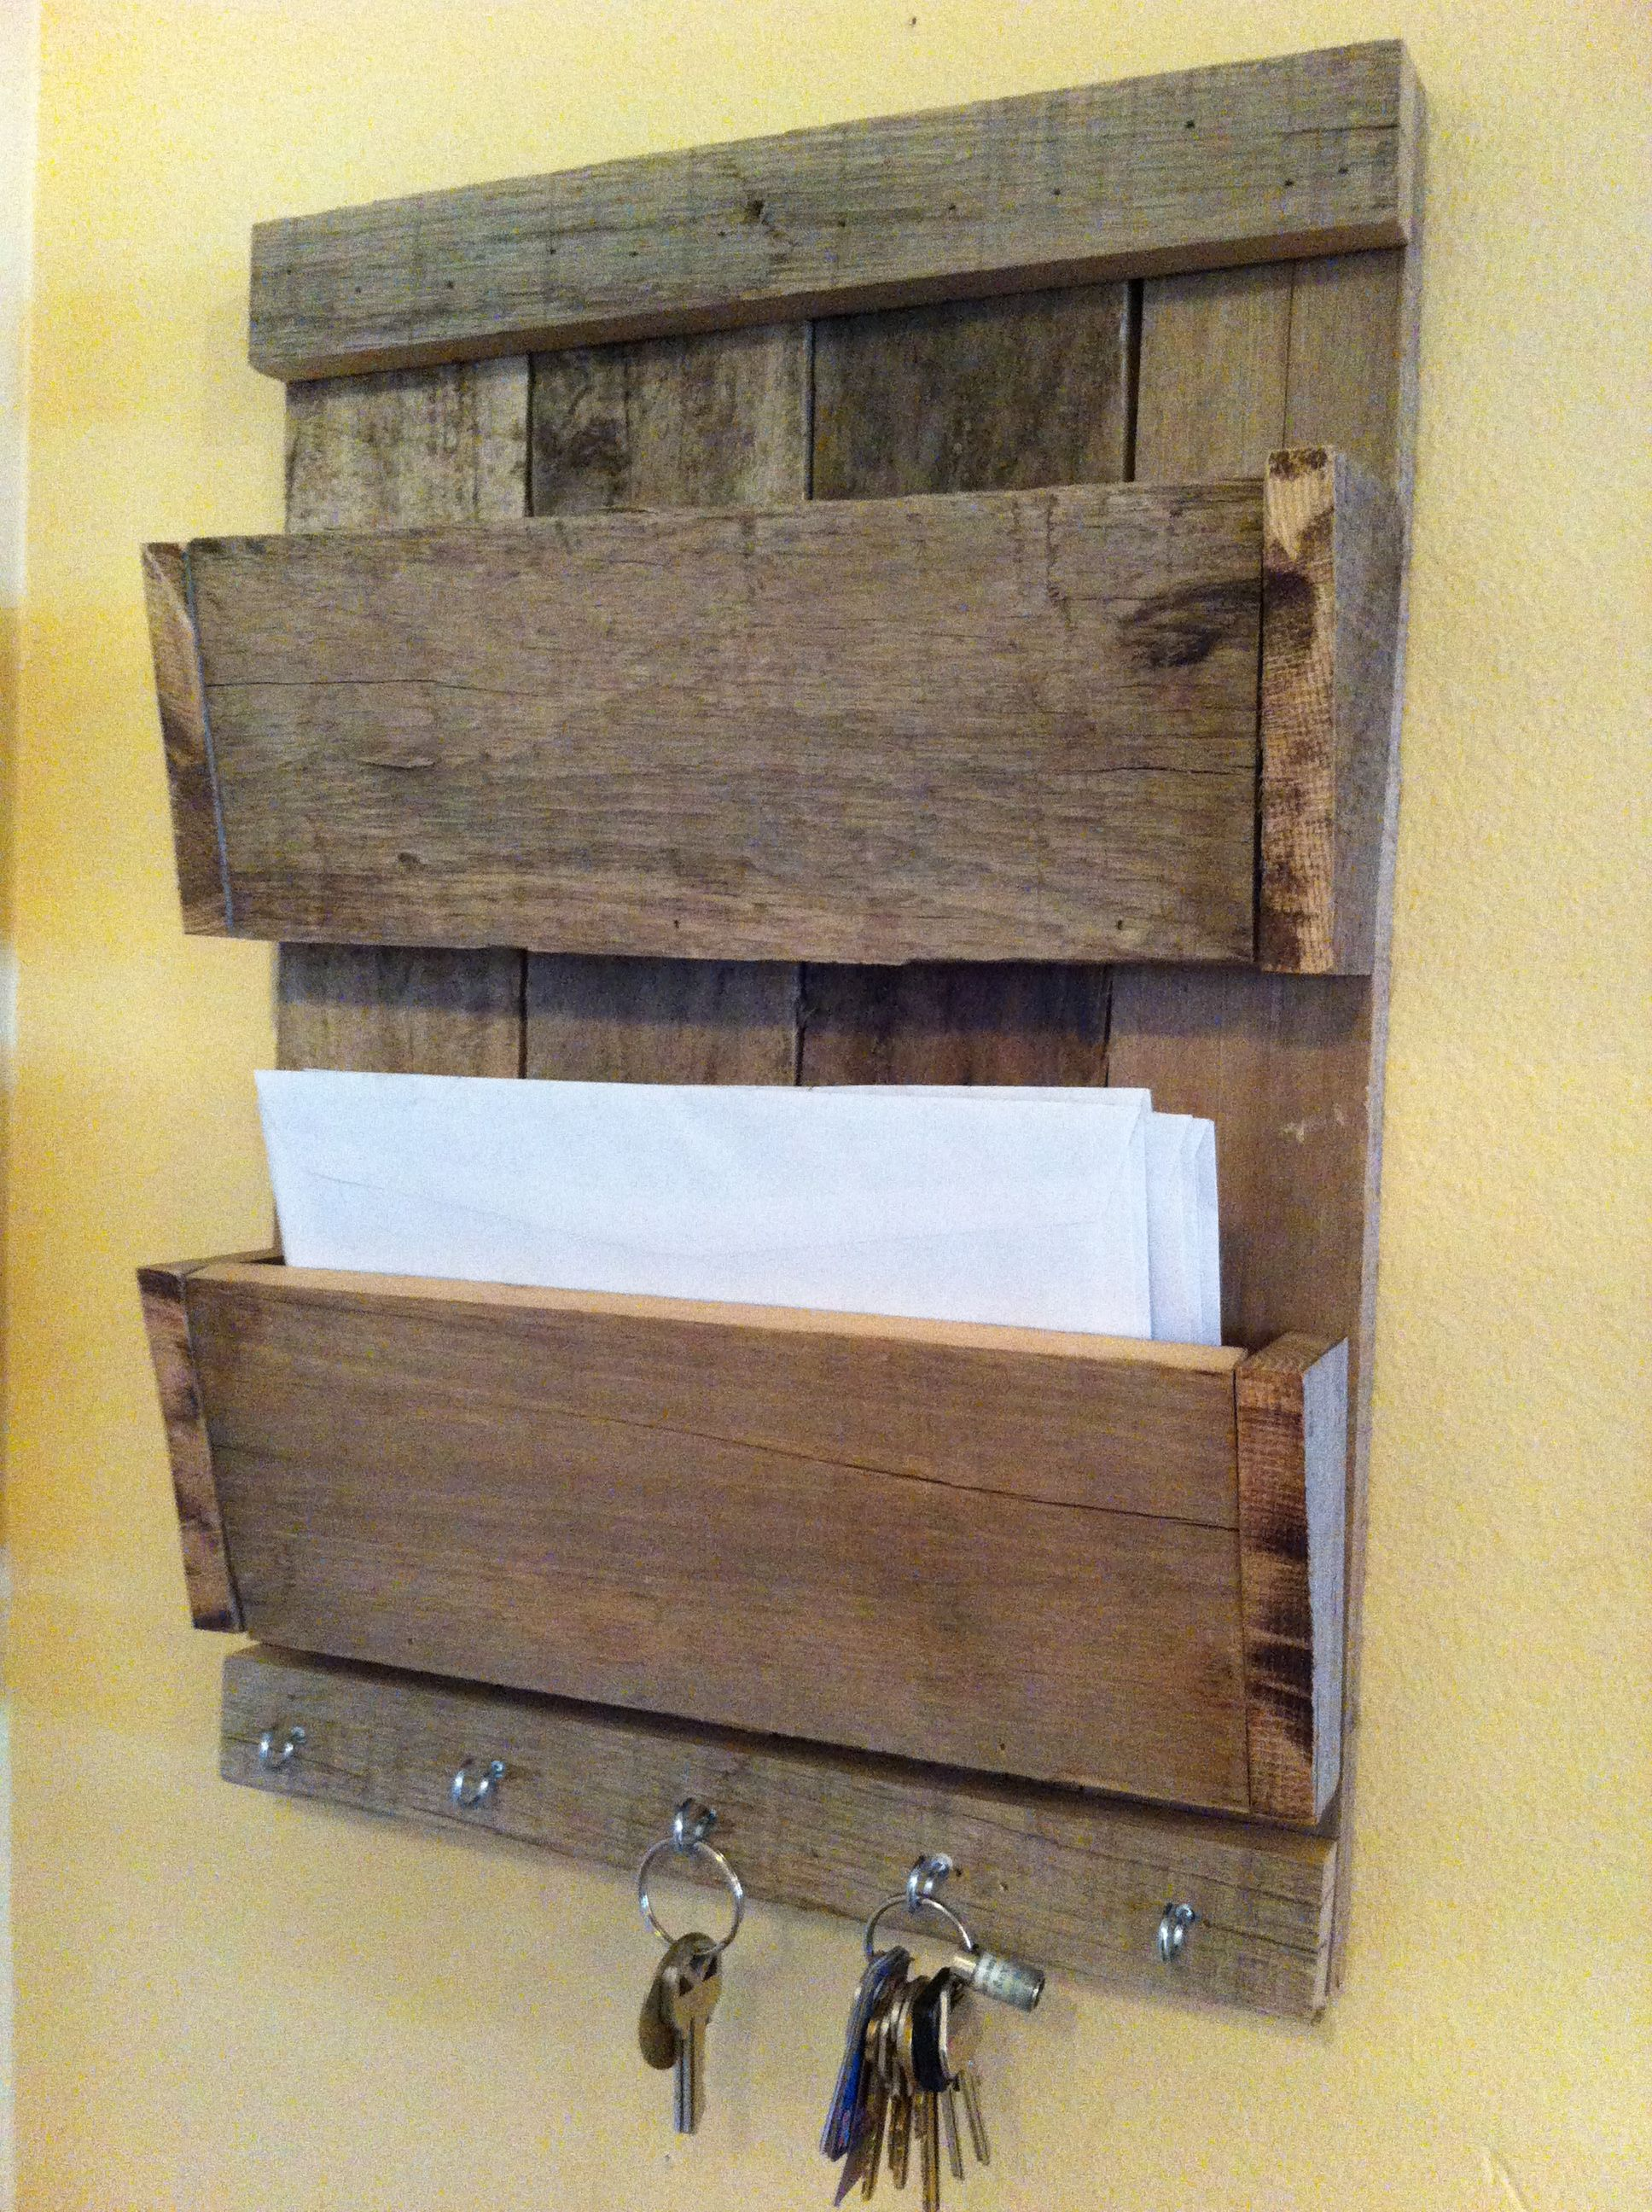 Wooden pallet craft projects - Find This Pin And More On Craft Most Beautiful Pallet Key Holder Pallets Furniture Designs